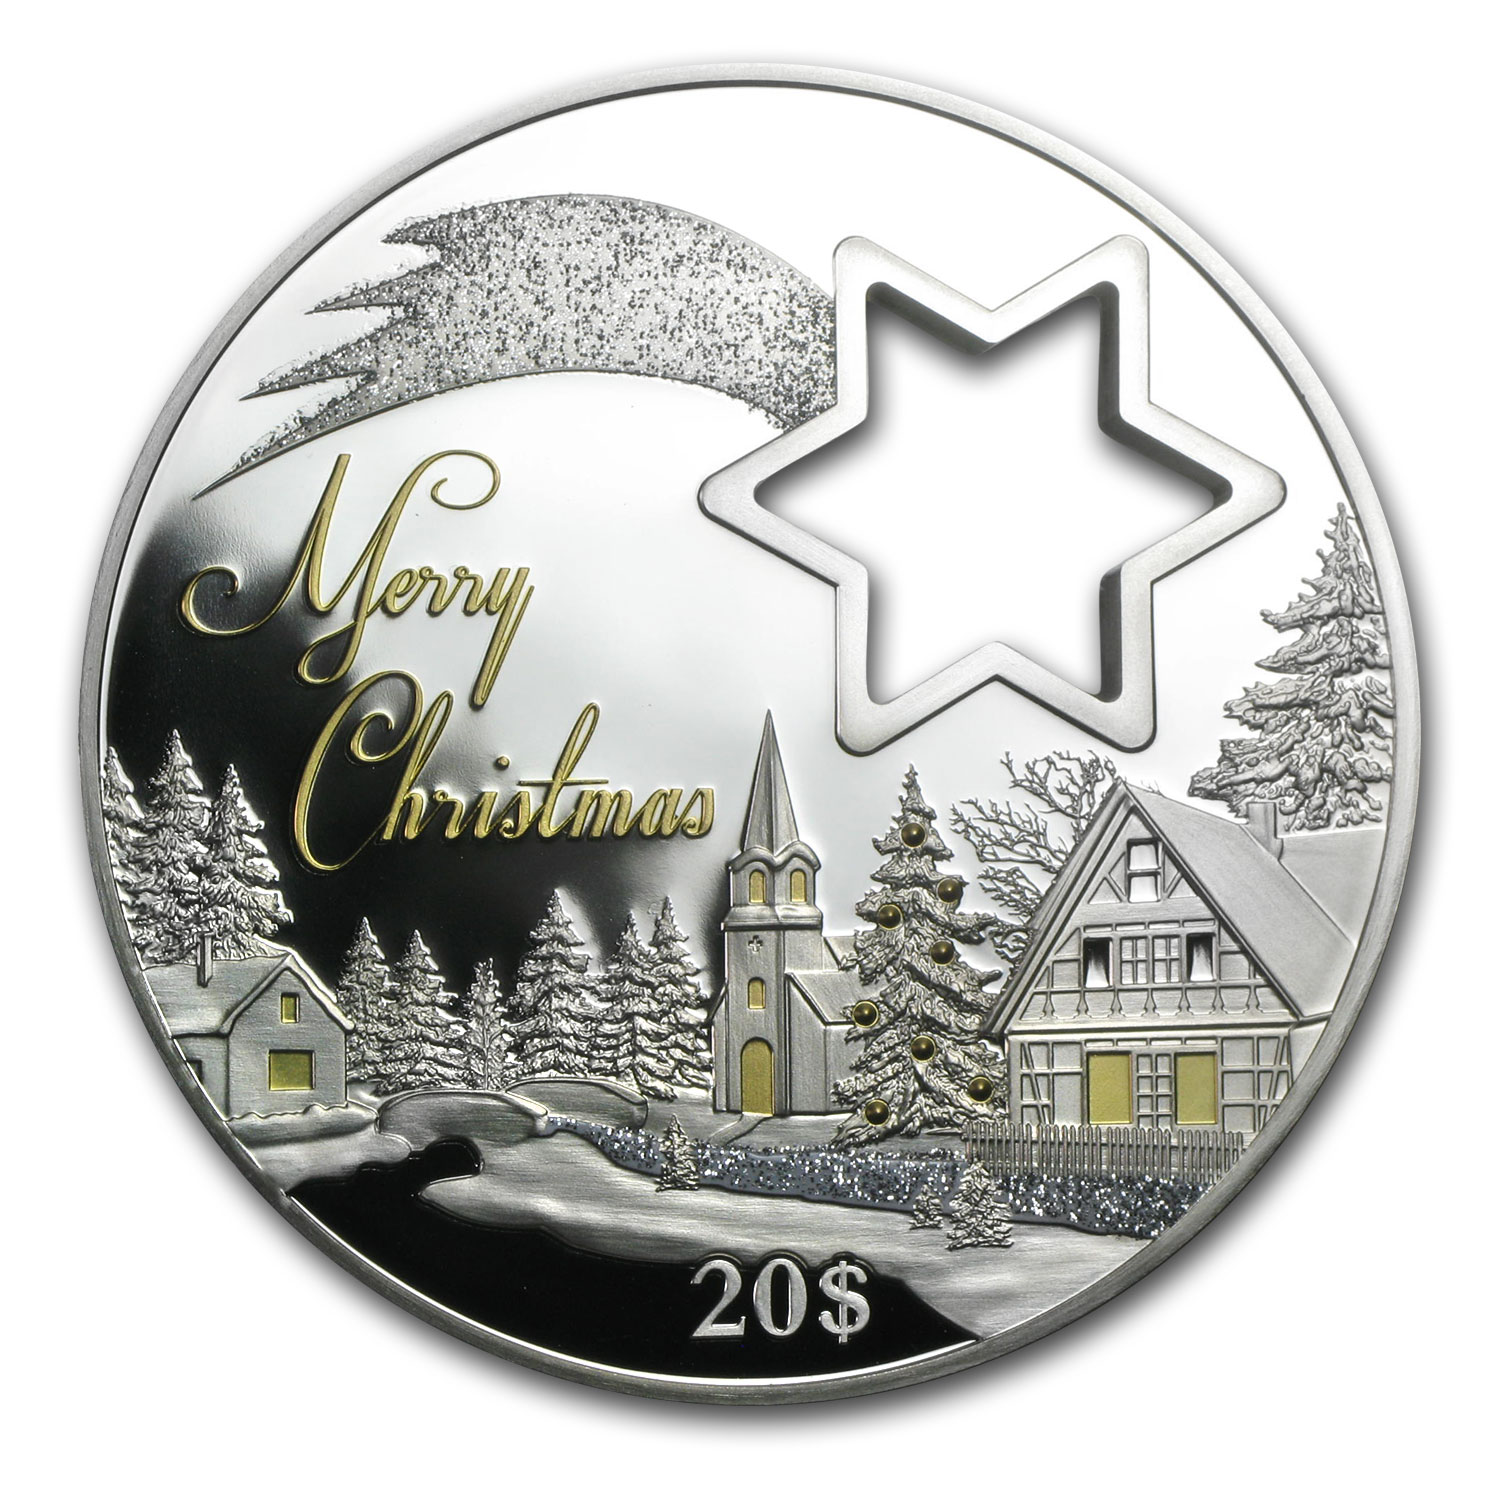 2014 Christmas Island 2 oz Silver Winter Wonderland Star Cut-out